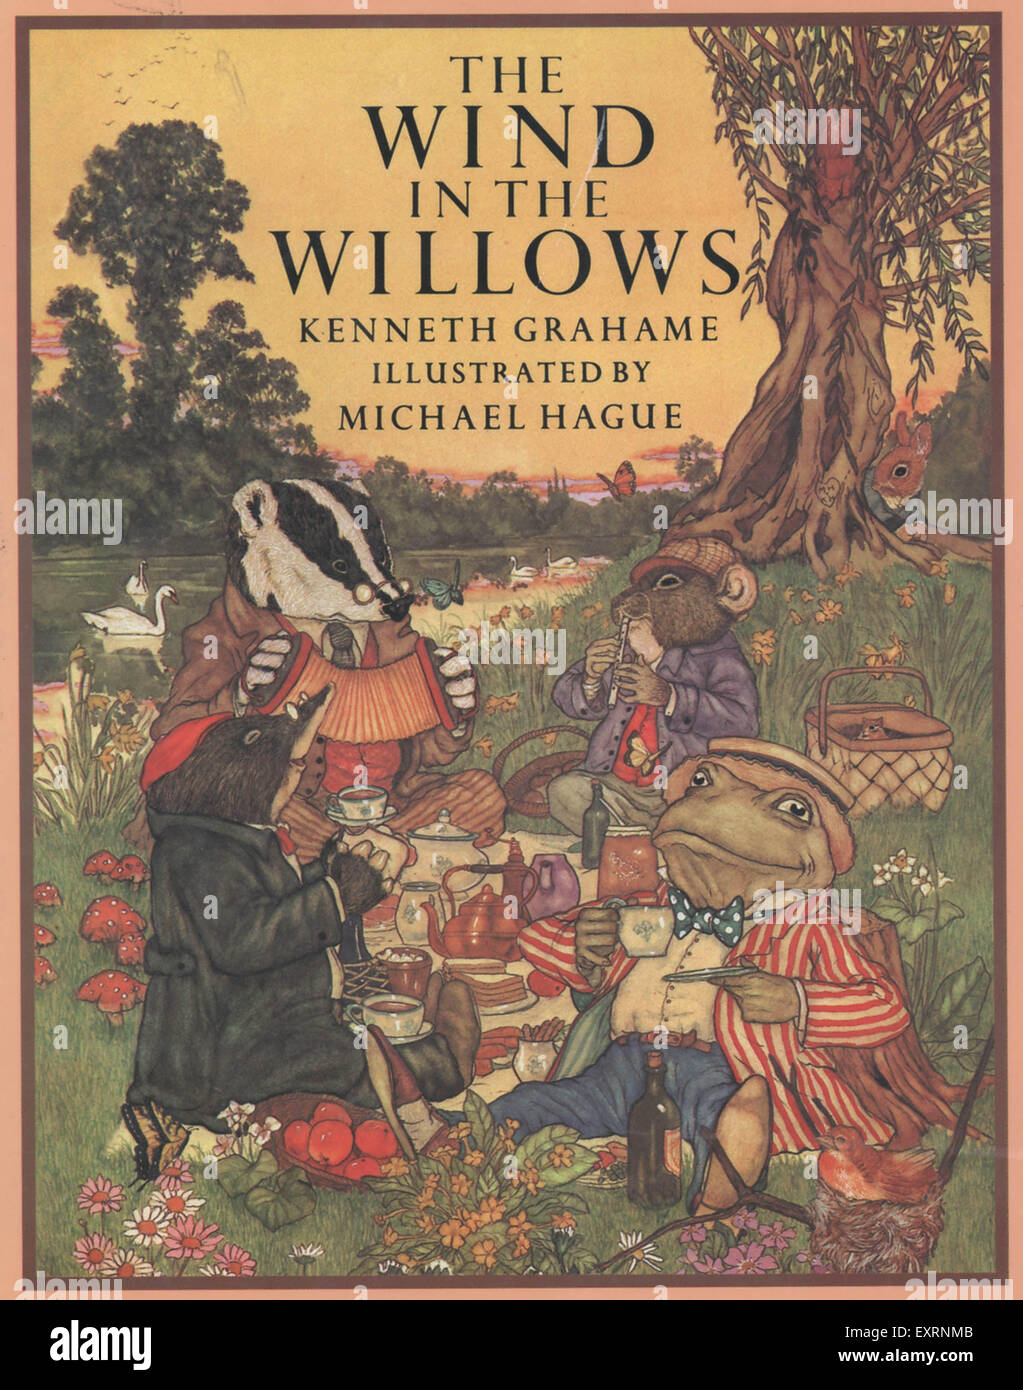 Wind in the willows ornaments - 1980s Uk The Wind In The Willows By Kenneth Grahame Book Cover Stock Image